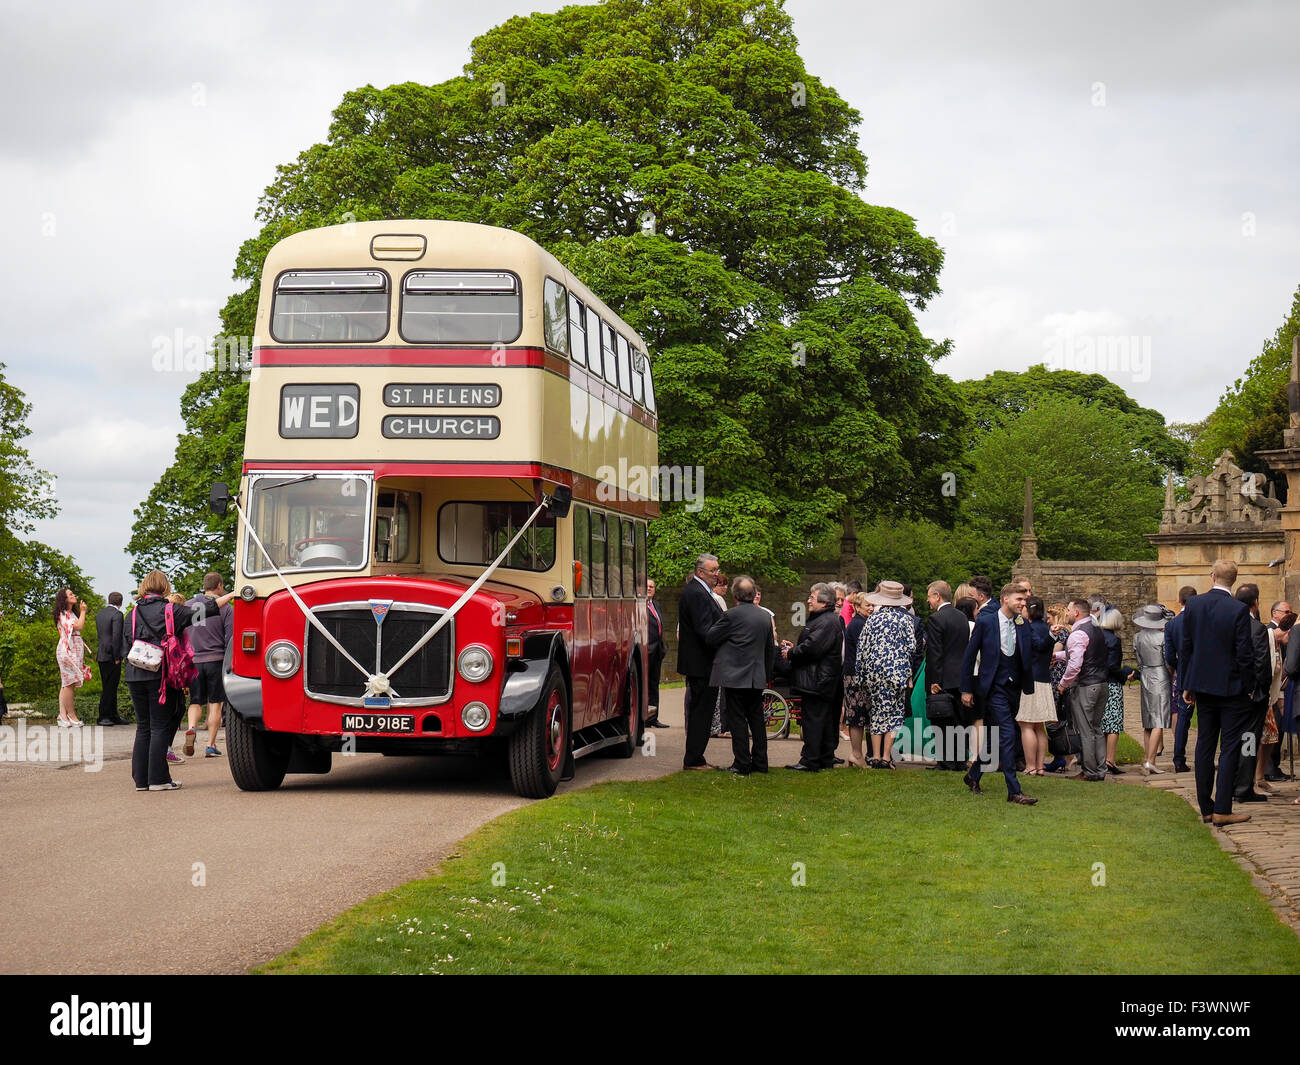 Wedding Party With Double Decker Bus In Derbyshire England